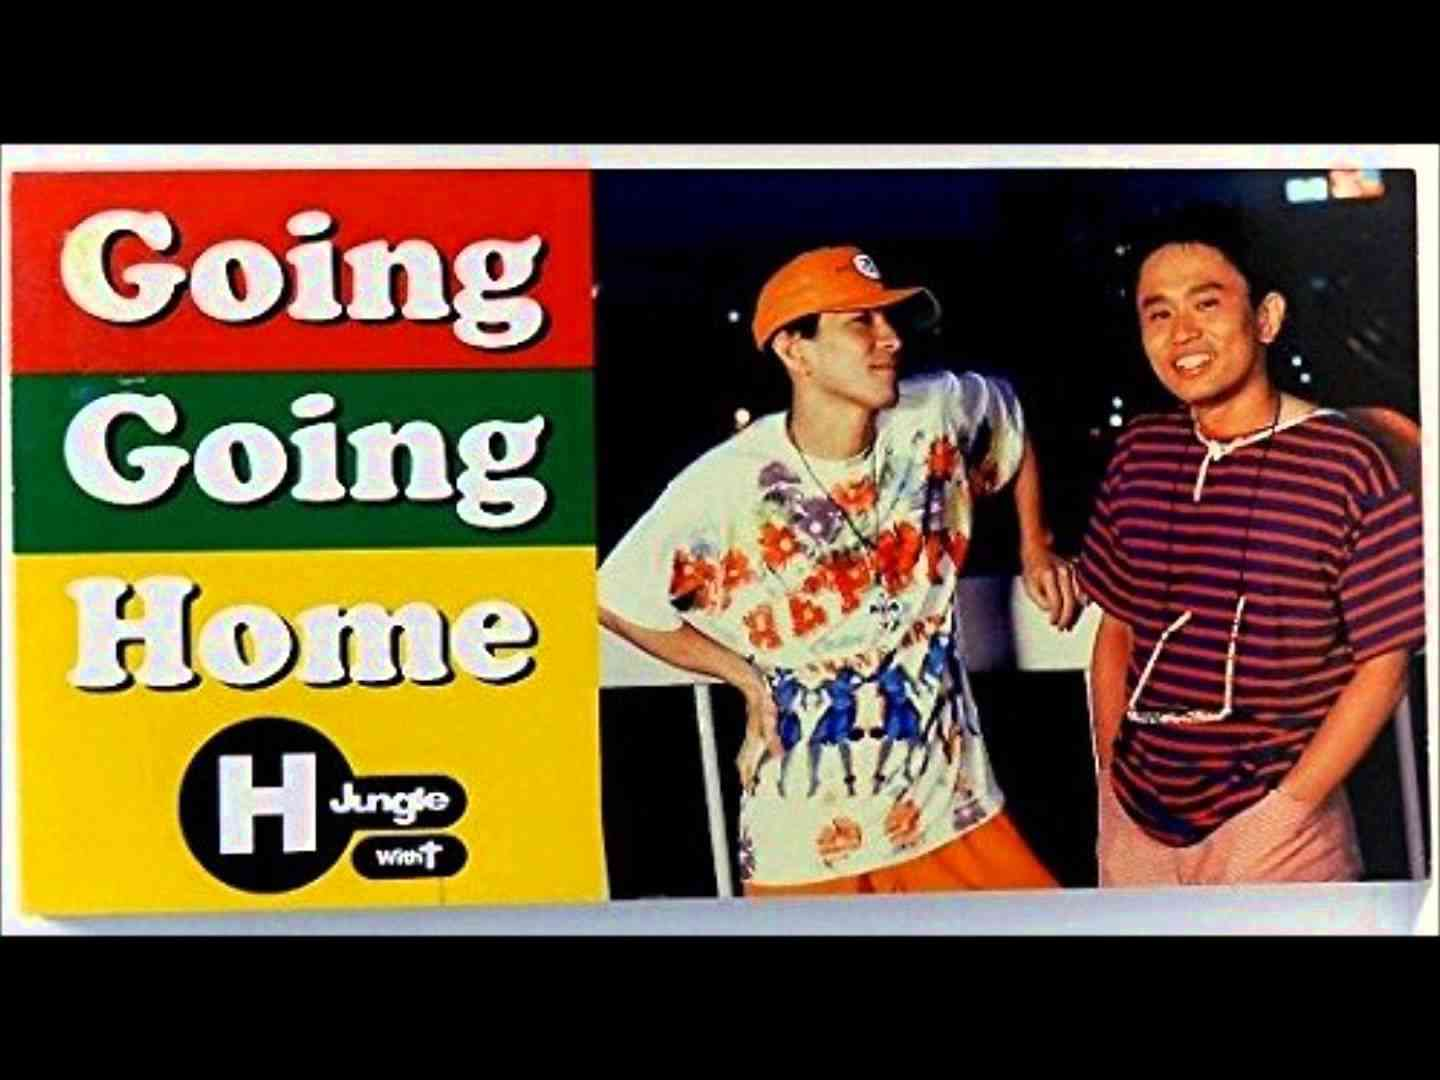 Going Going Home / H Jungle with t - YouTube